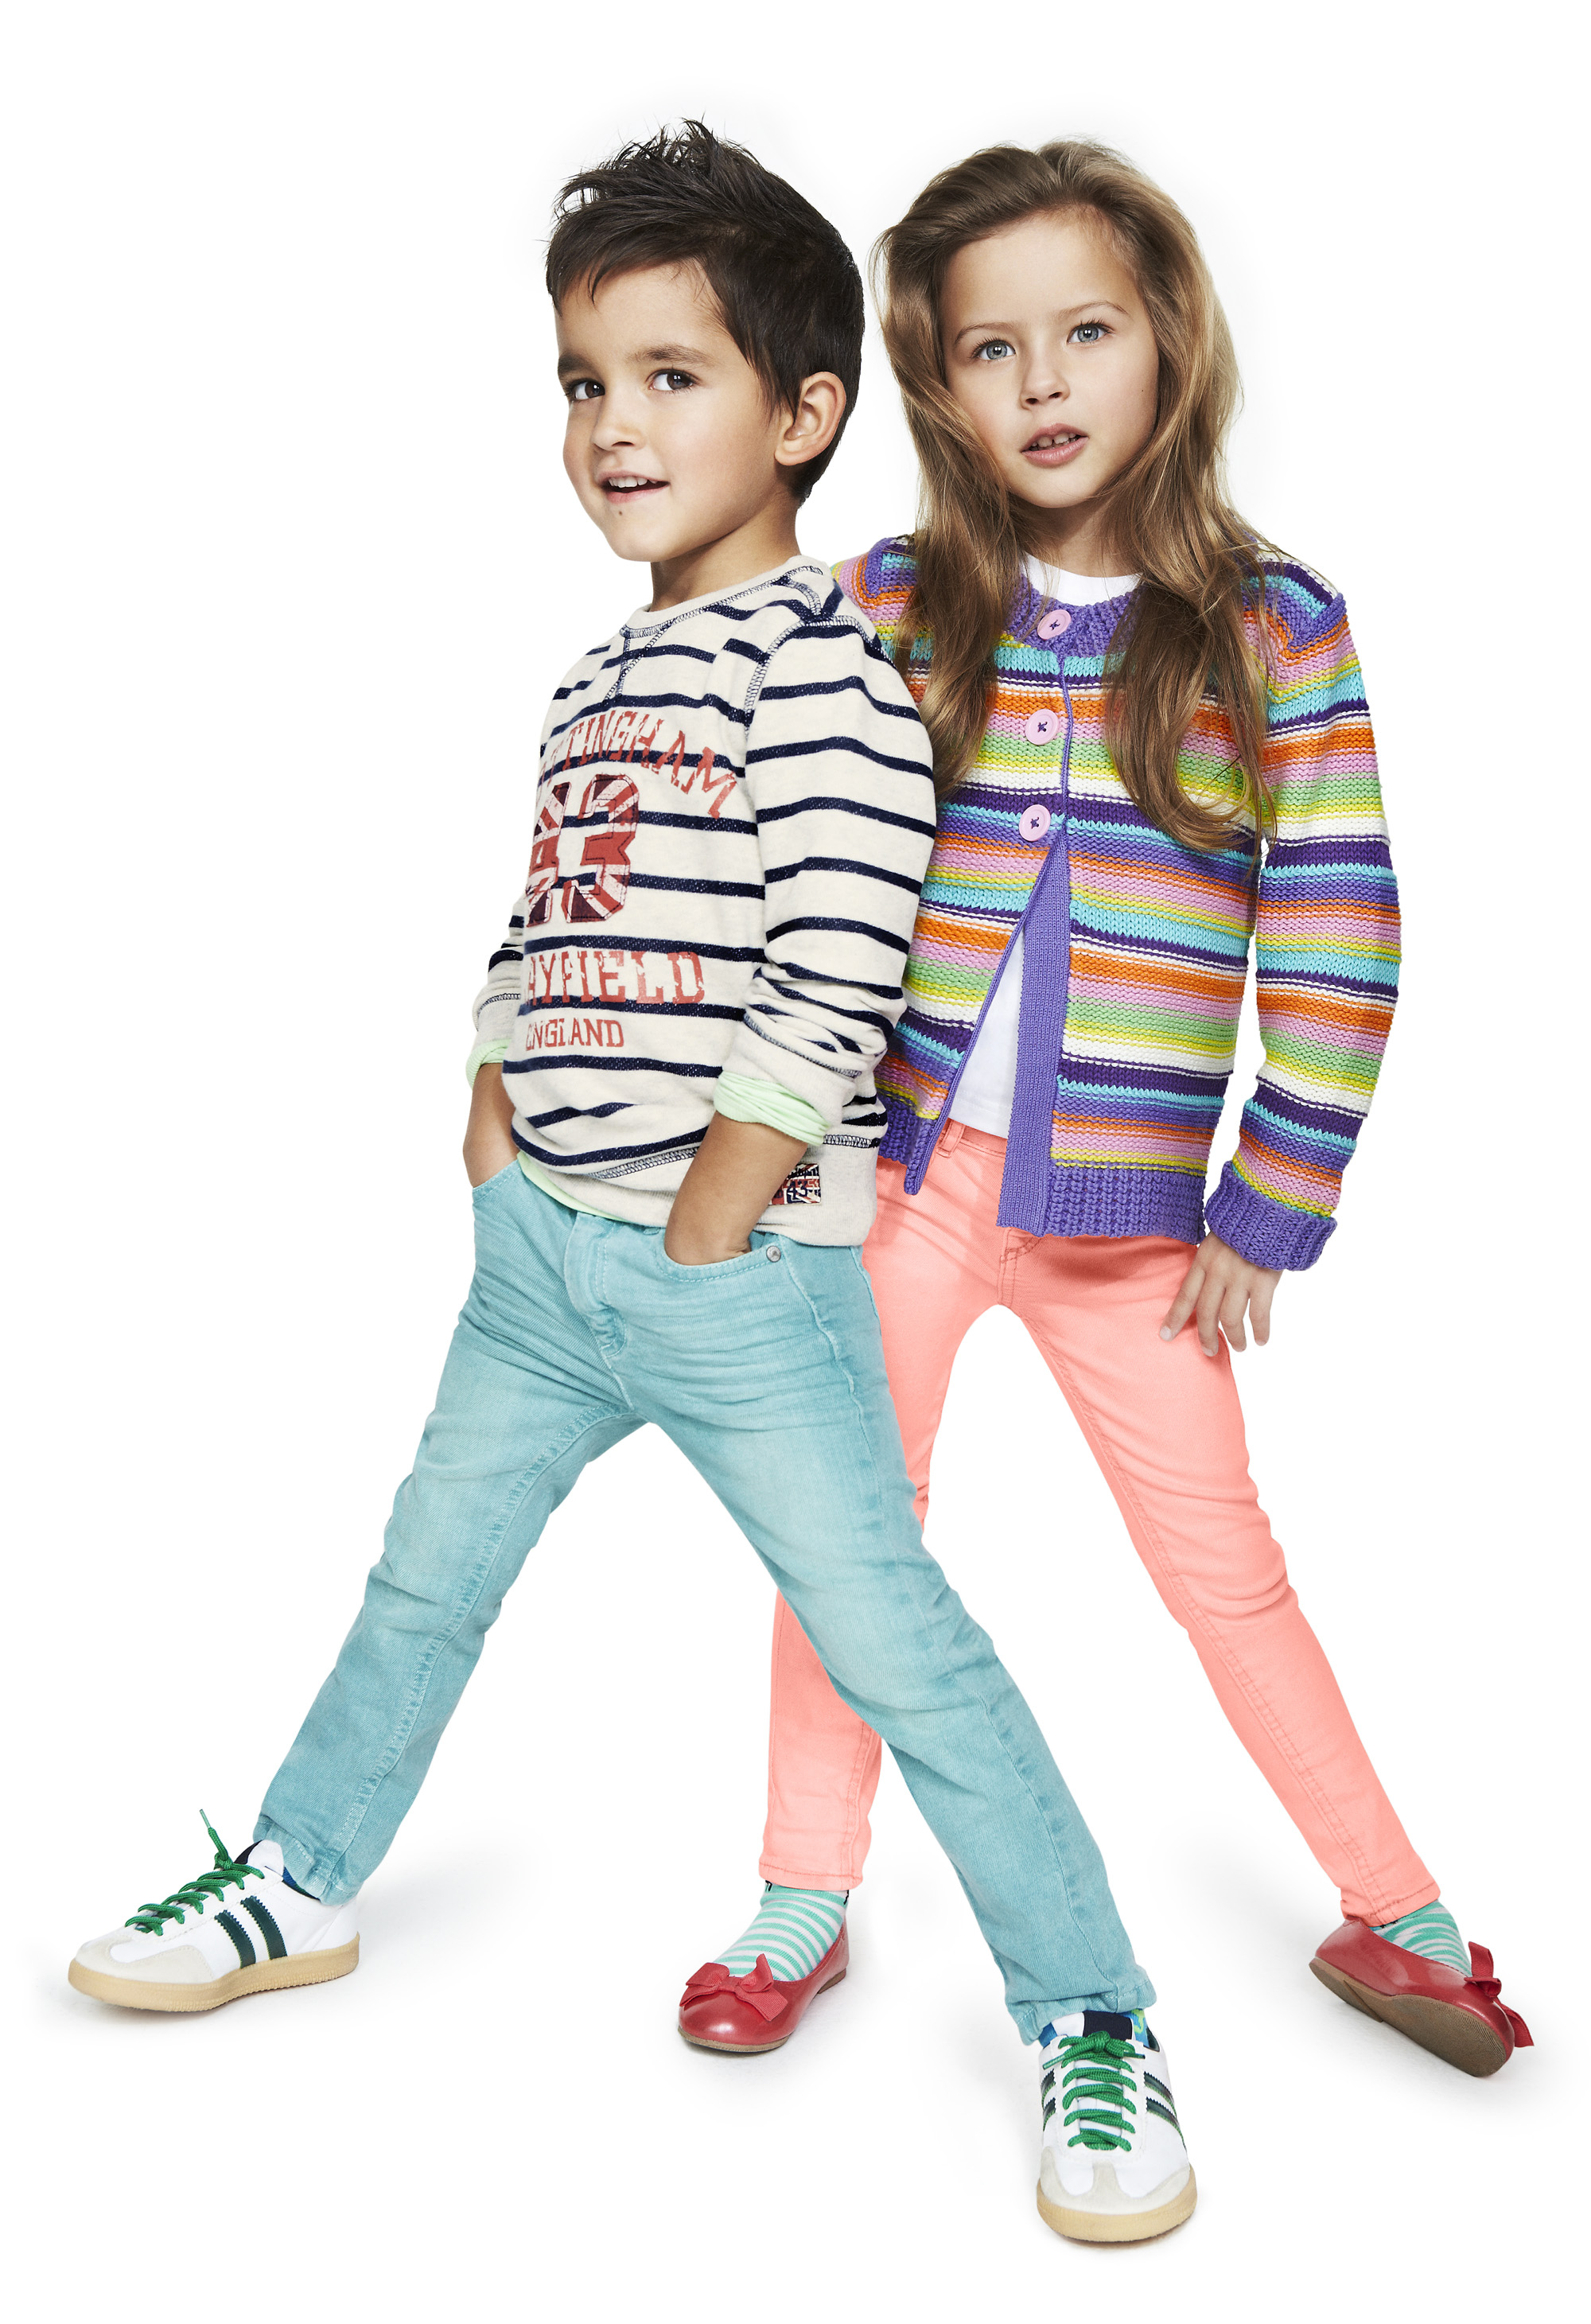 Fashion Kids Wallpapers High Quality Download Free